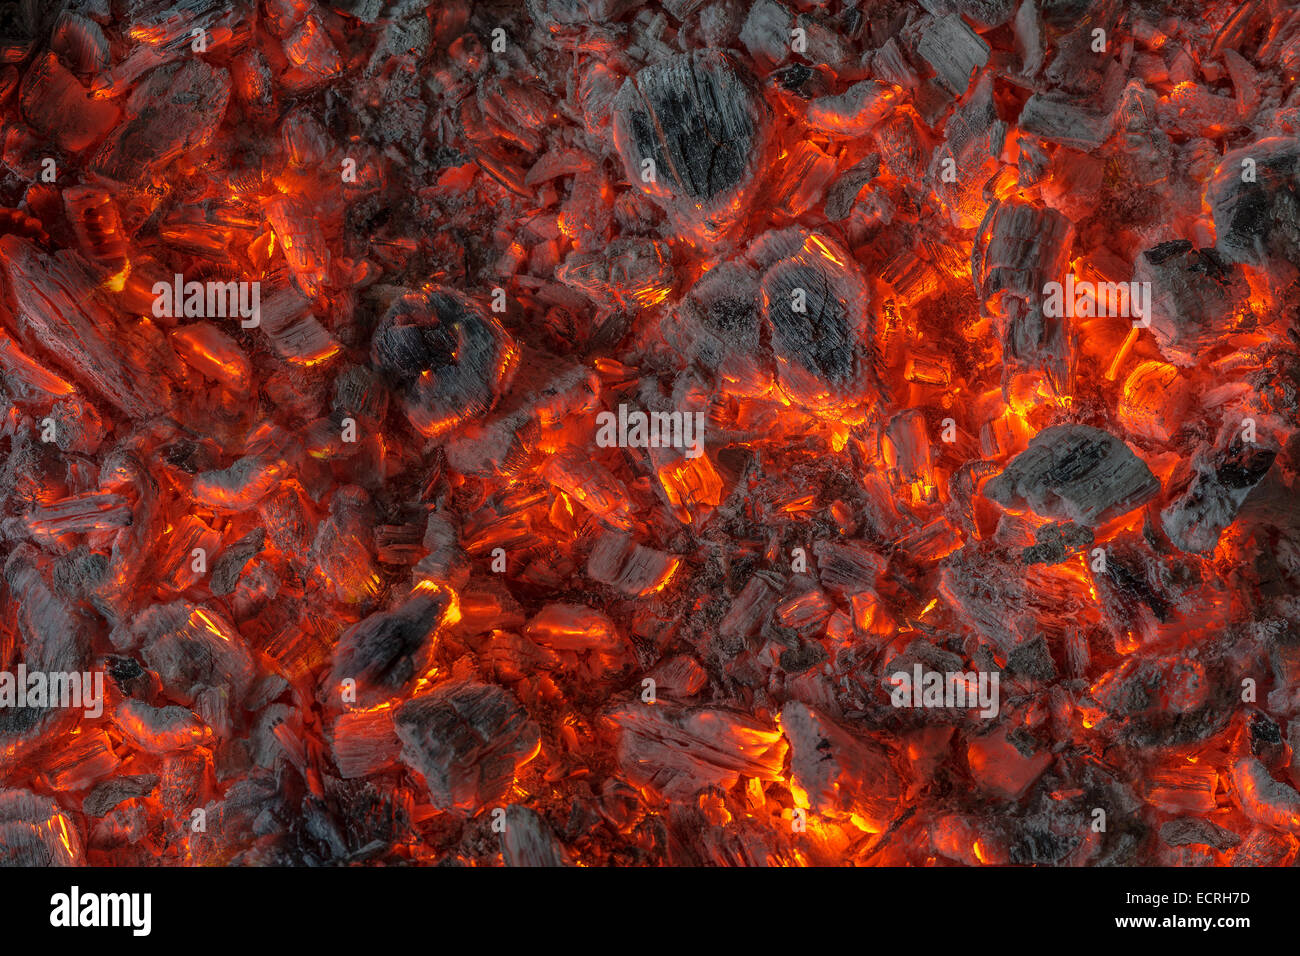 incandescent orange and red embers texture - Stock Image